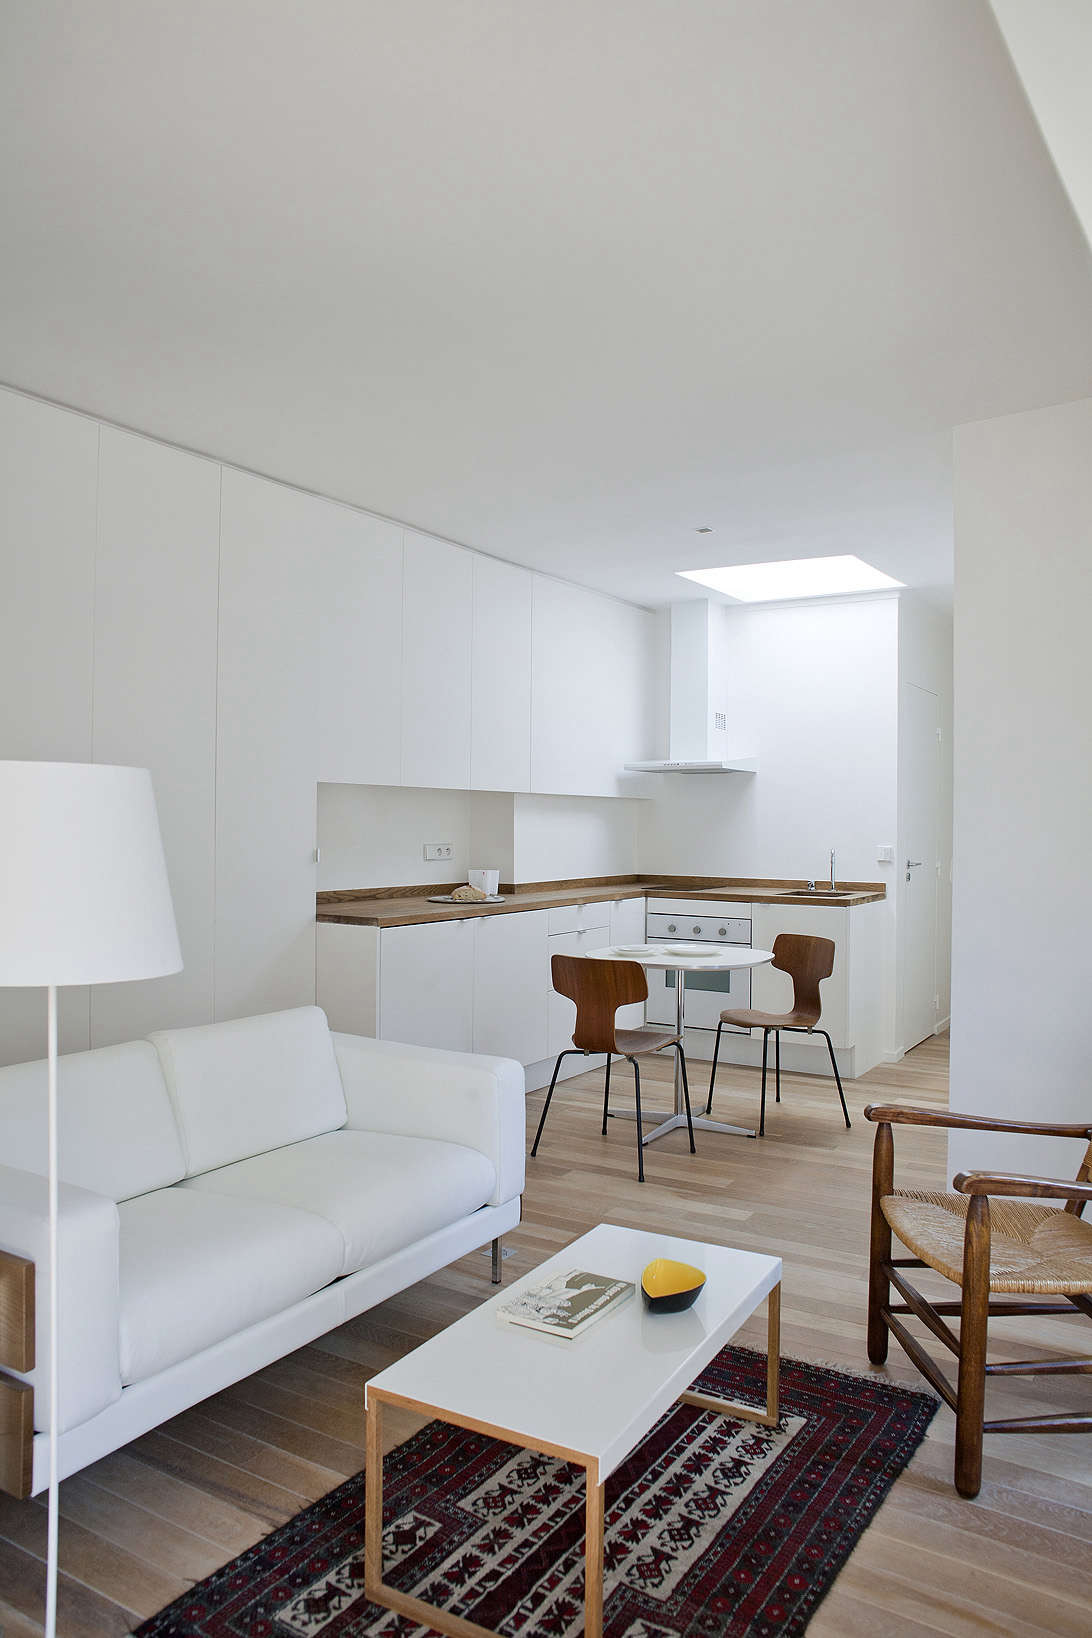 Paris all-white pied-a-terre, a garret remodel in Montparnasse by architect Philippe Harden | Remodelista